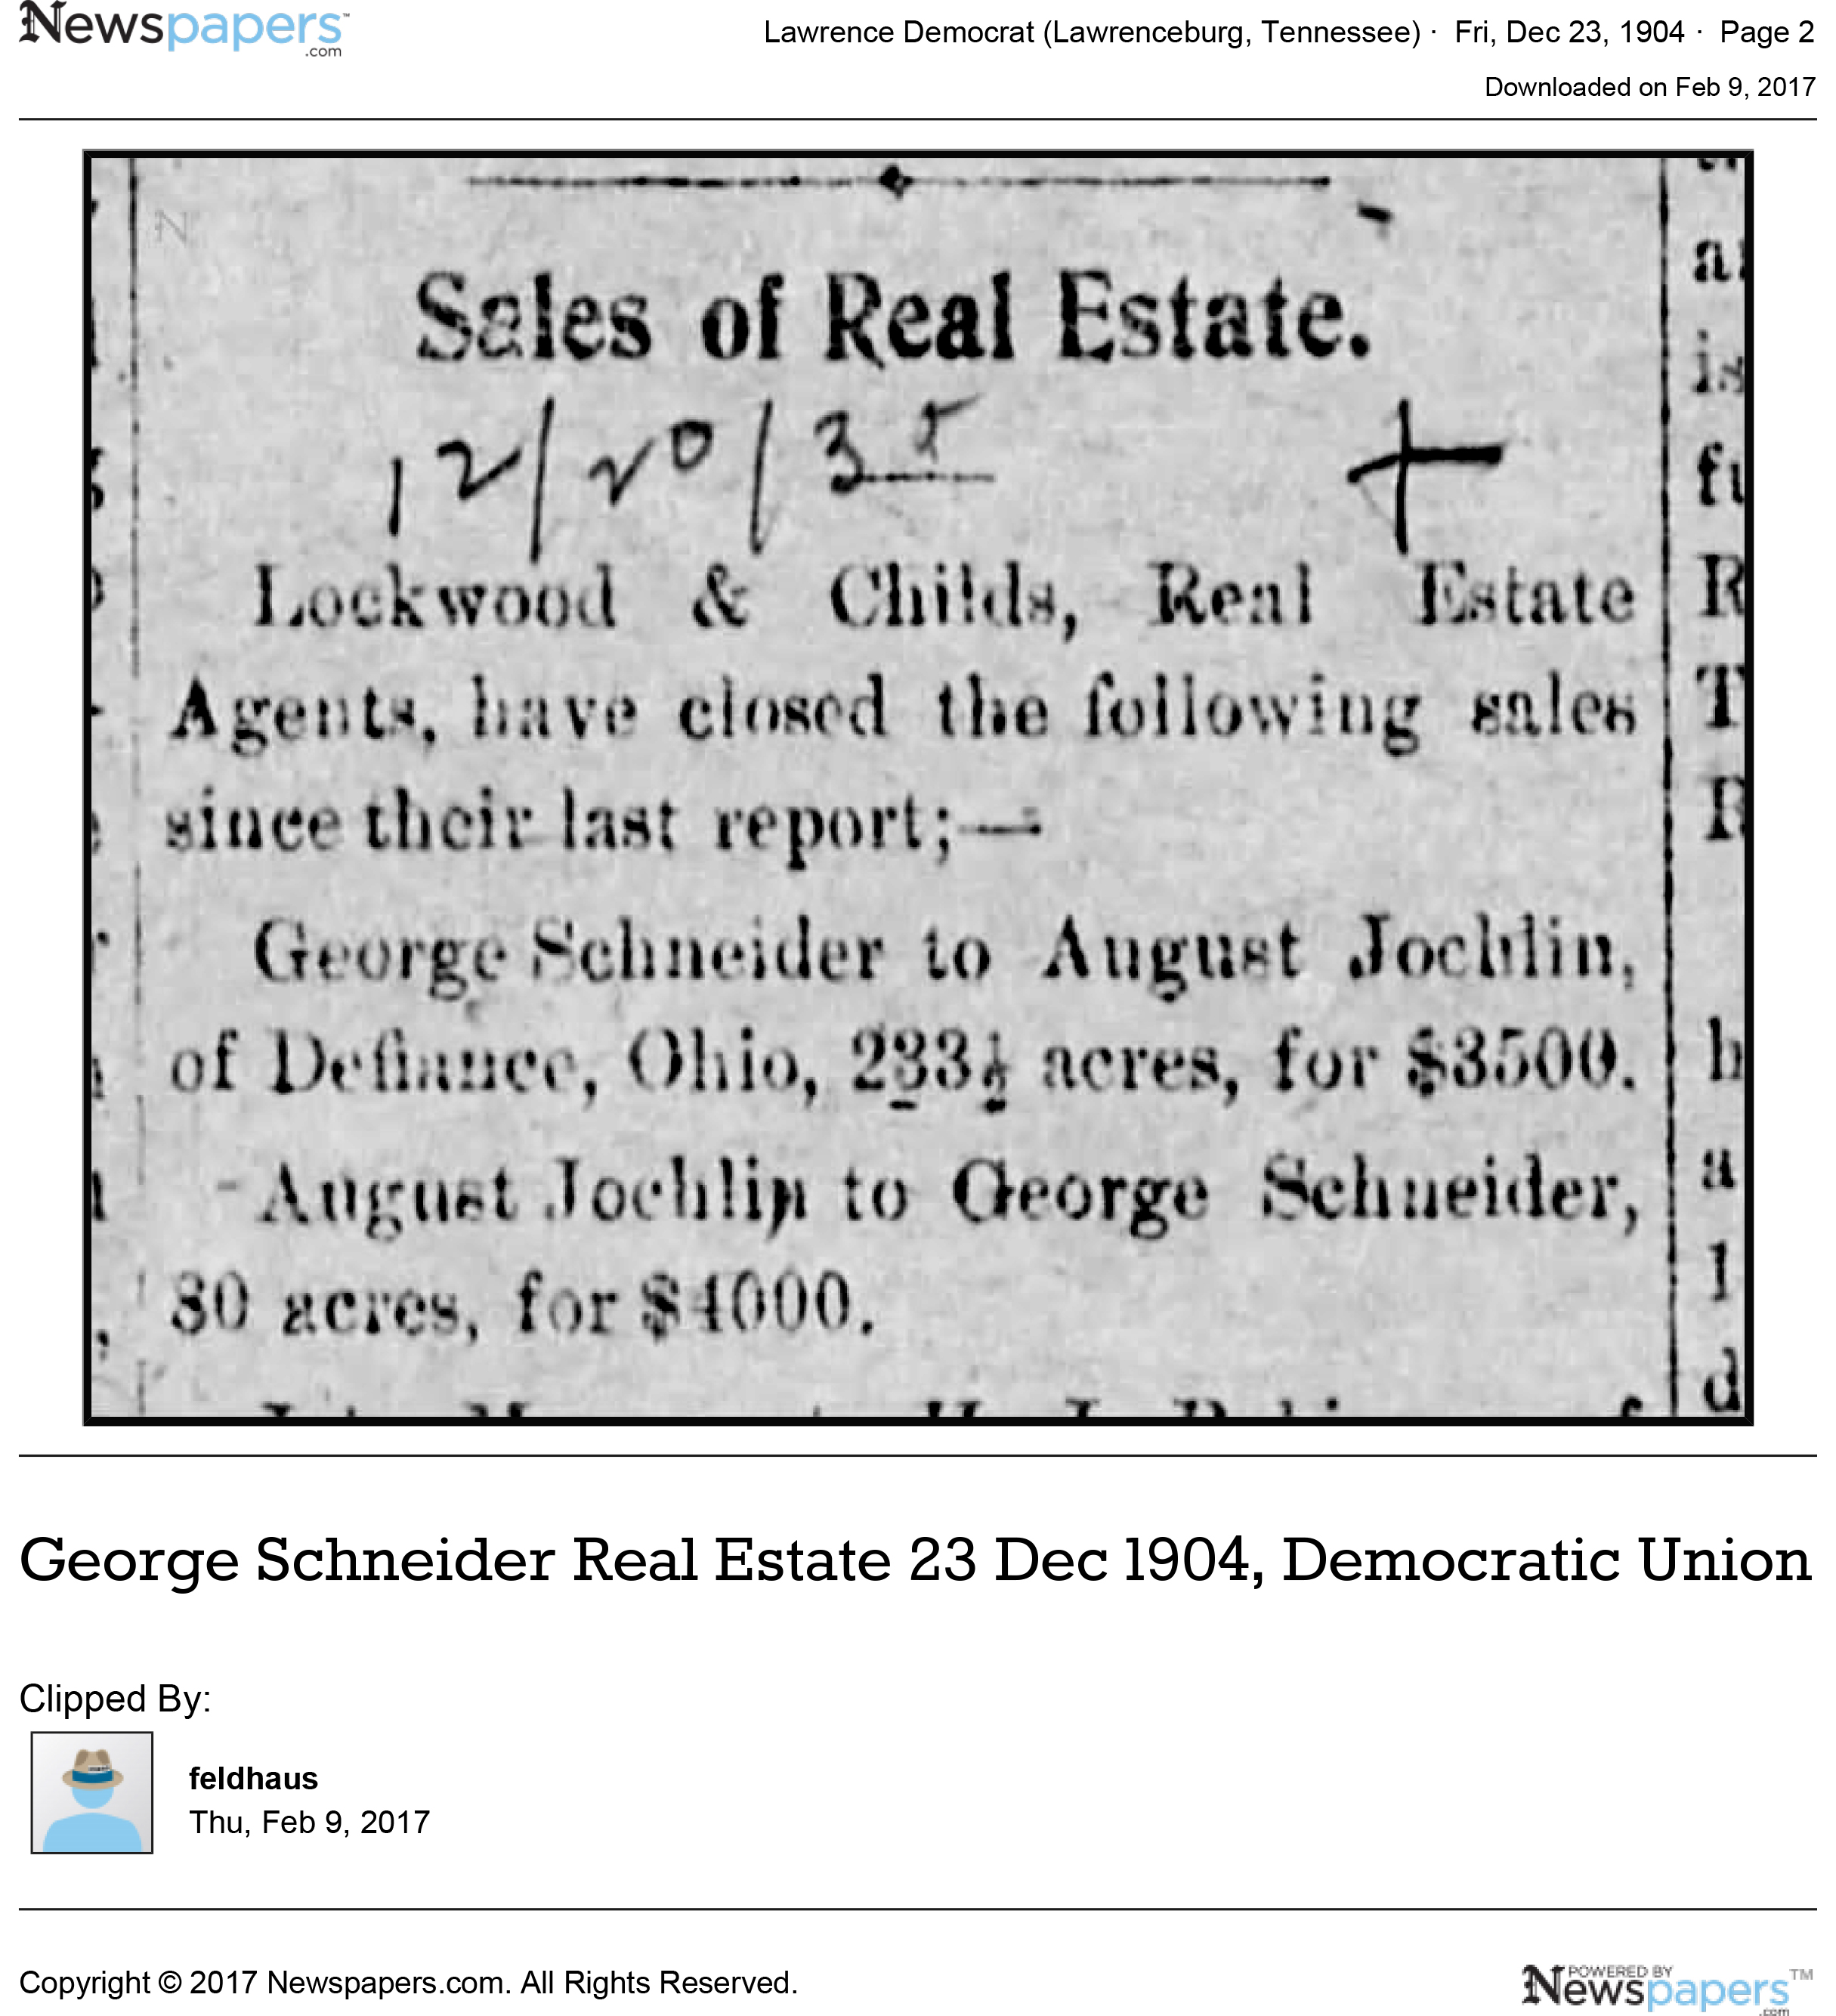 george_schneider_real_estate_23_dec_1904__democratic_union.jpg